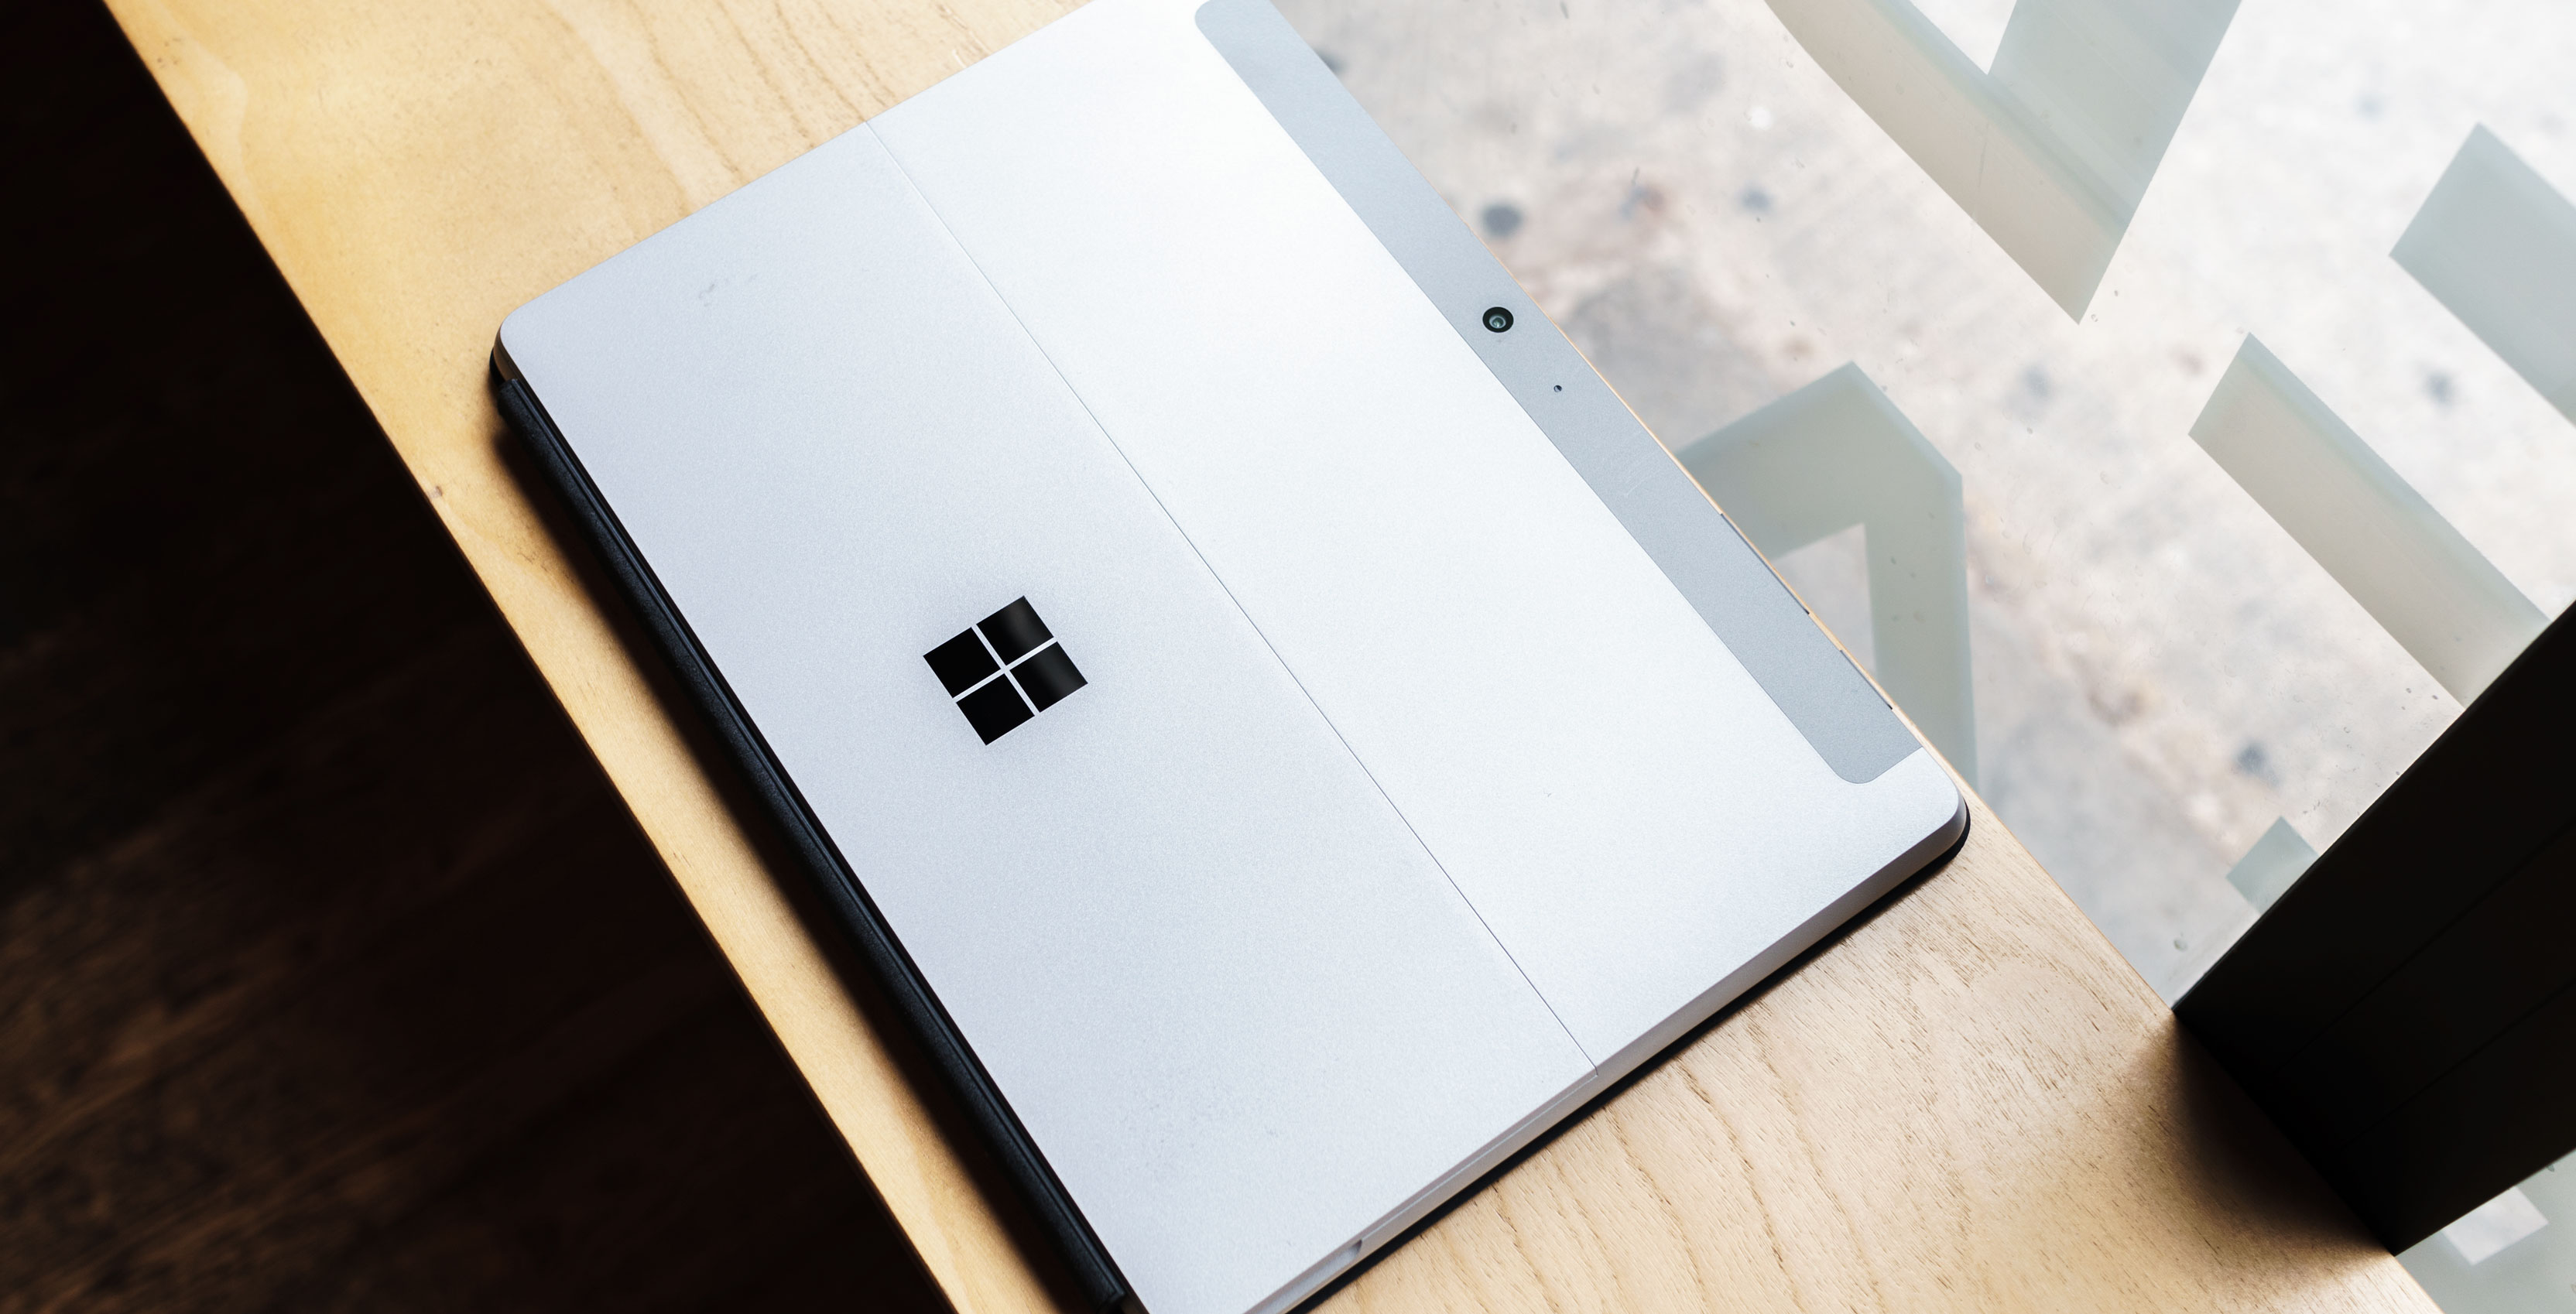 Microsoft's diminutive new Surface Go 2-in-1